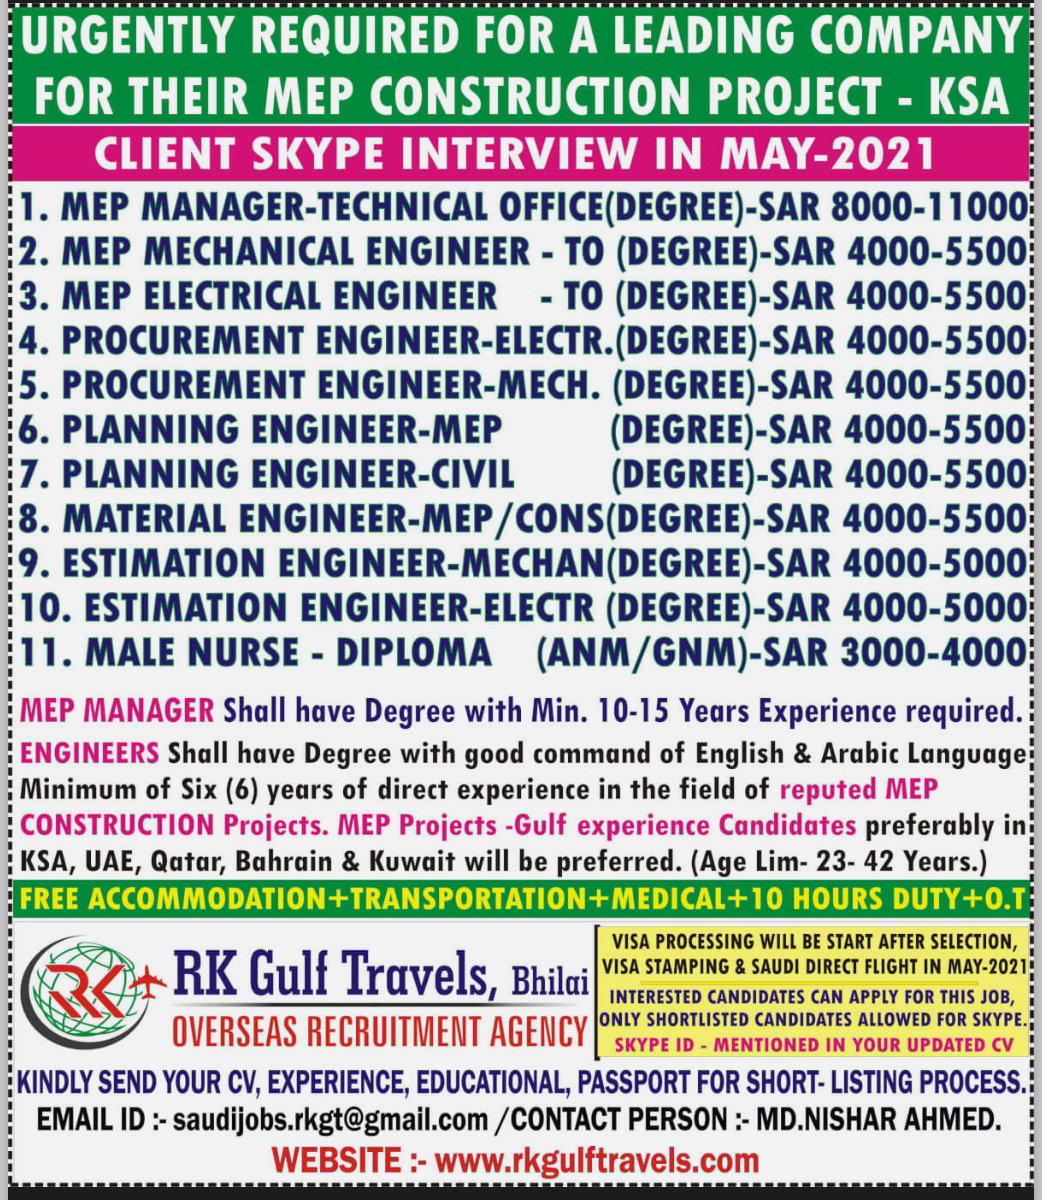 WALK IN INTERVIEWS AT BHILAI FOR KSA LEADING COMPANY